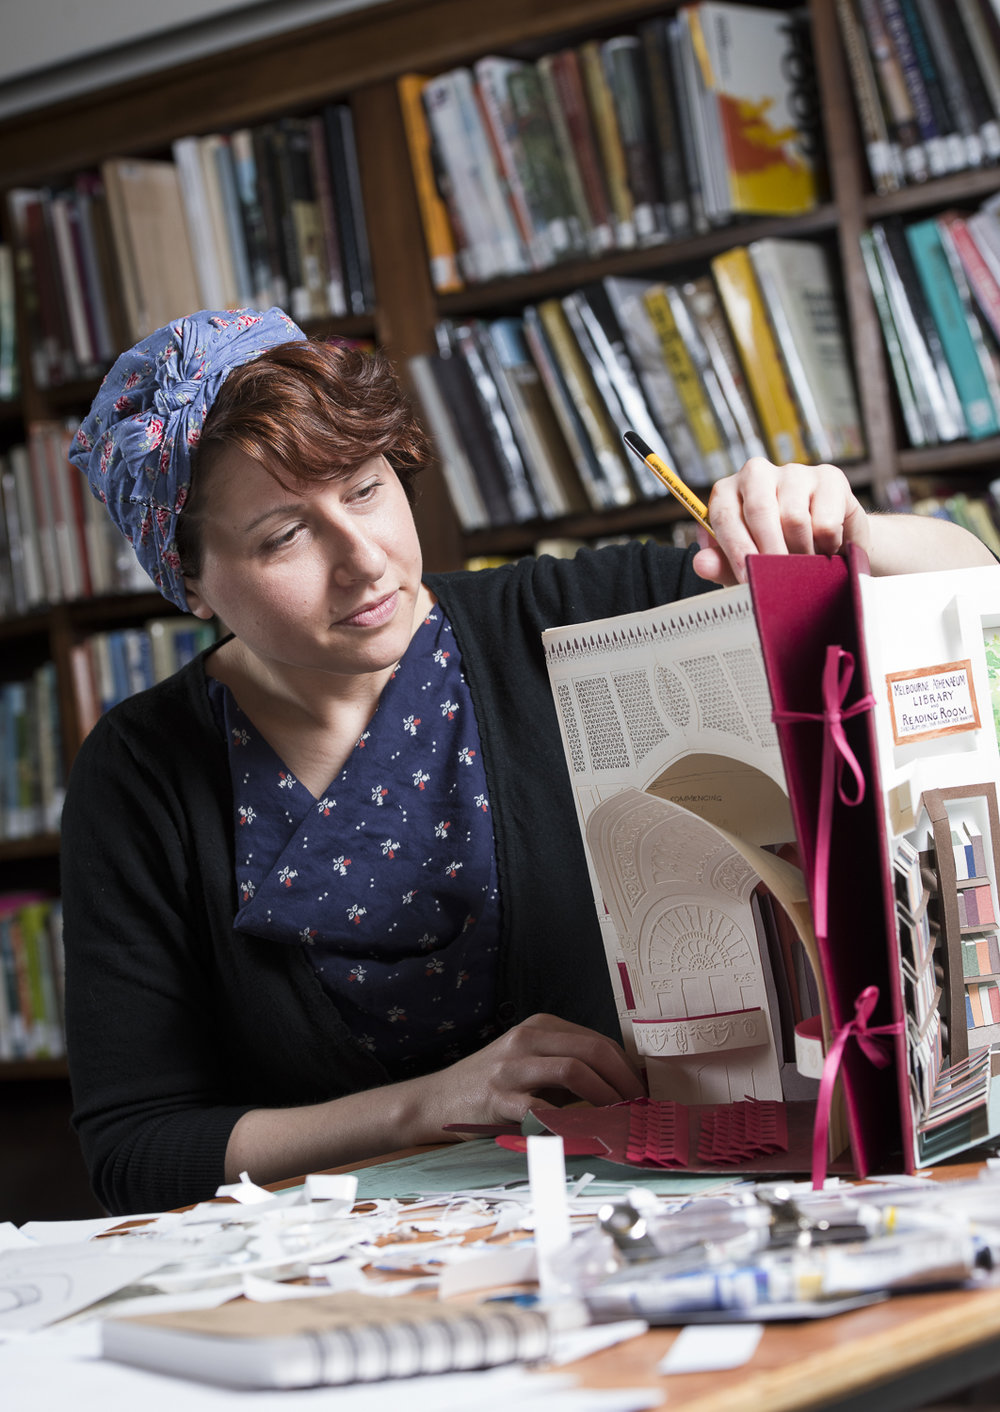 Anne Kucera - Artist in Residence at the Melbourne Athenaeum Library